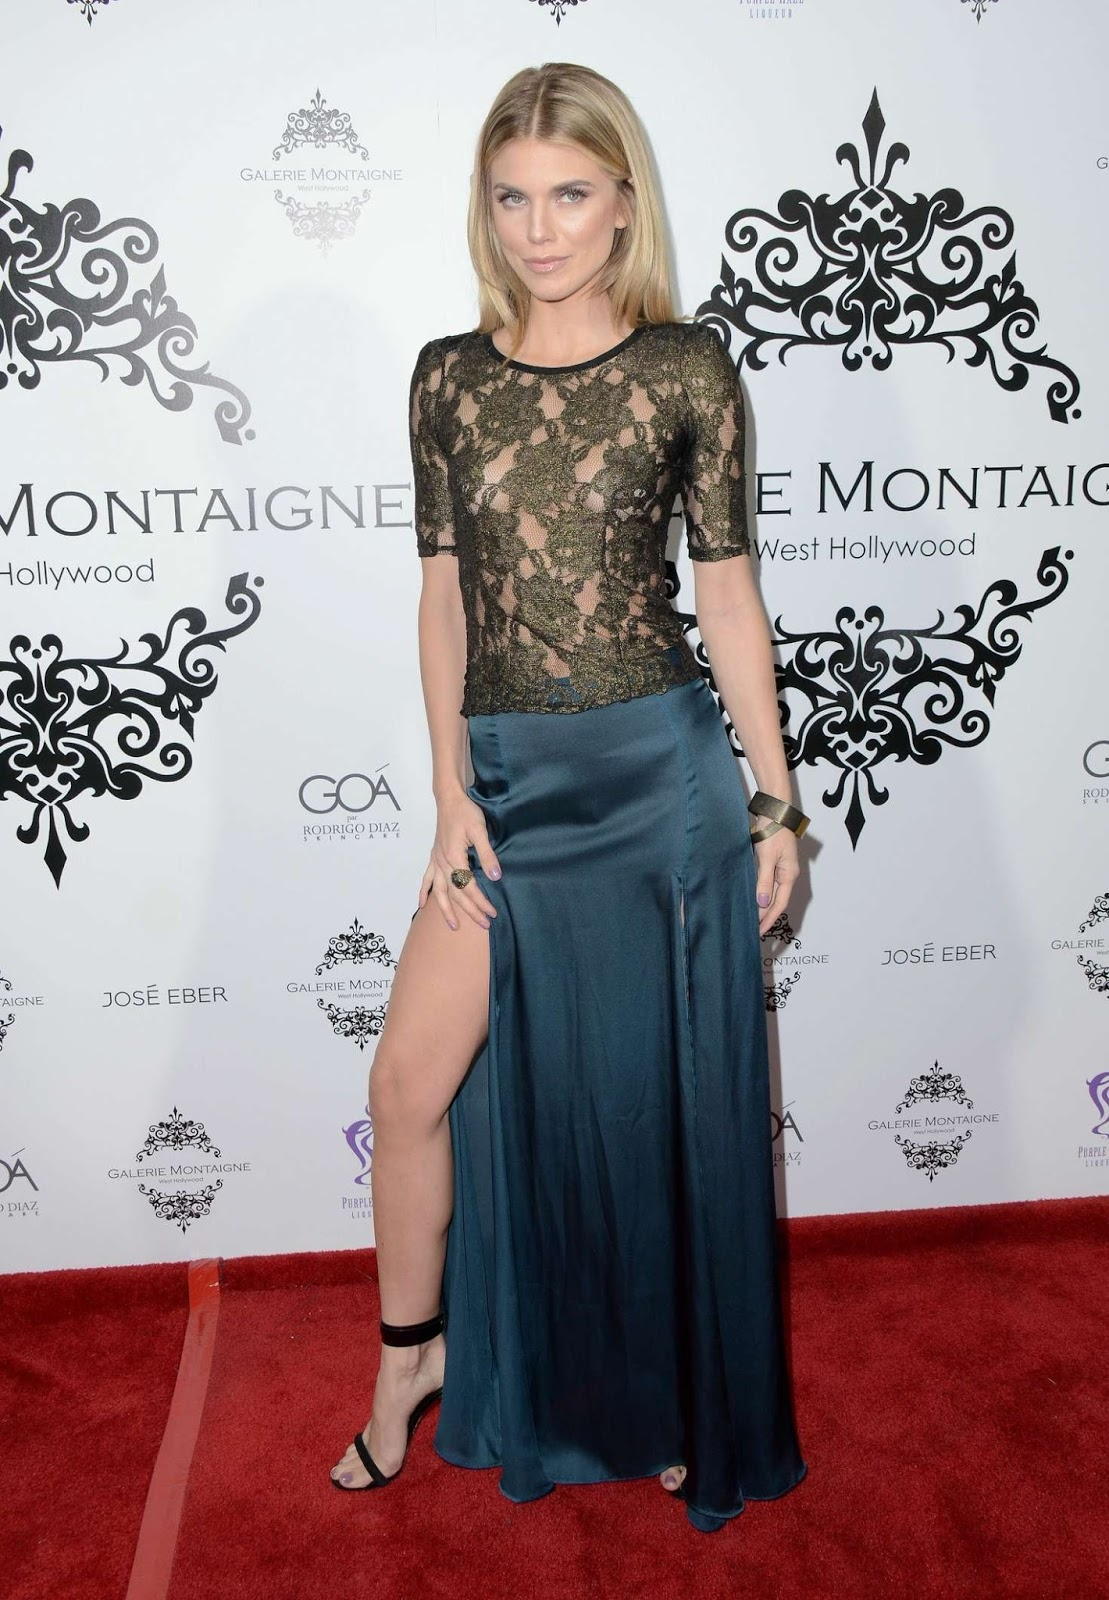 AnnaLynne McCord at Galerie Montaigne Opening - Photo AnnaLynne McCord 2016